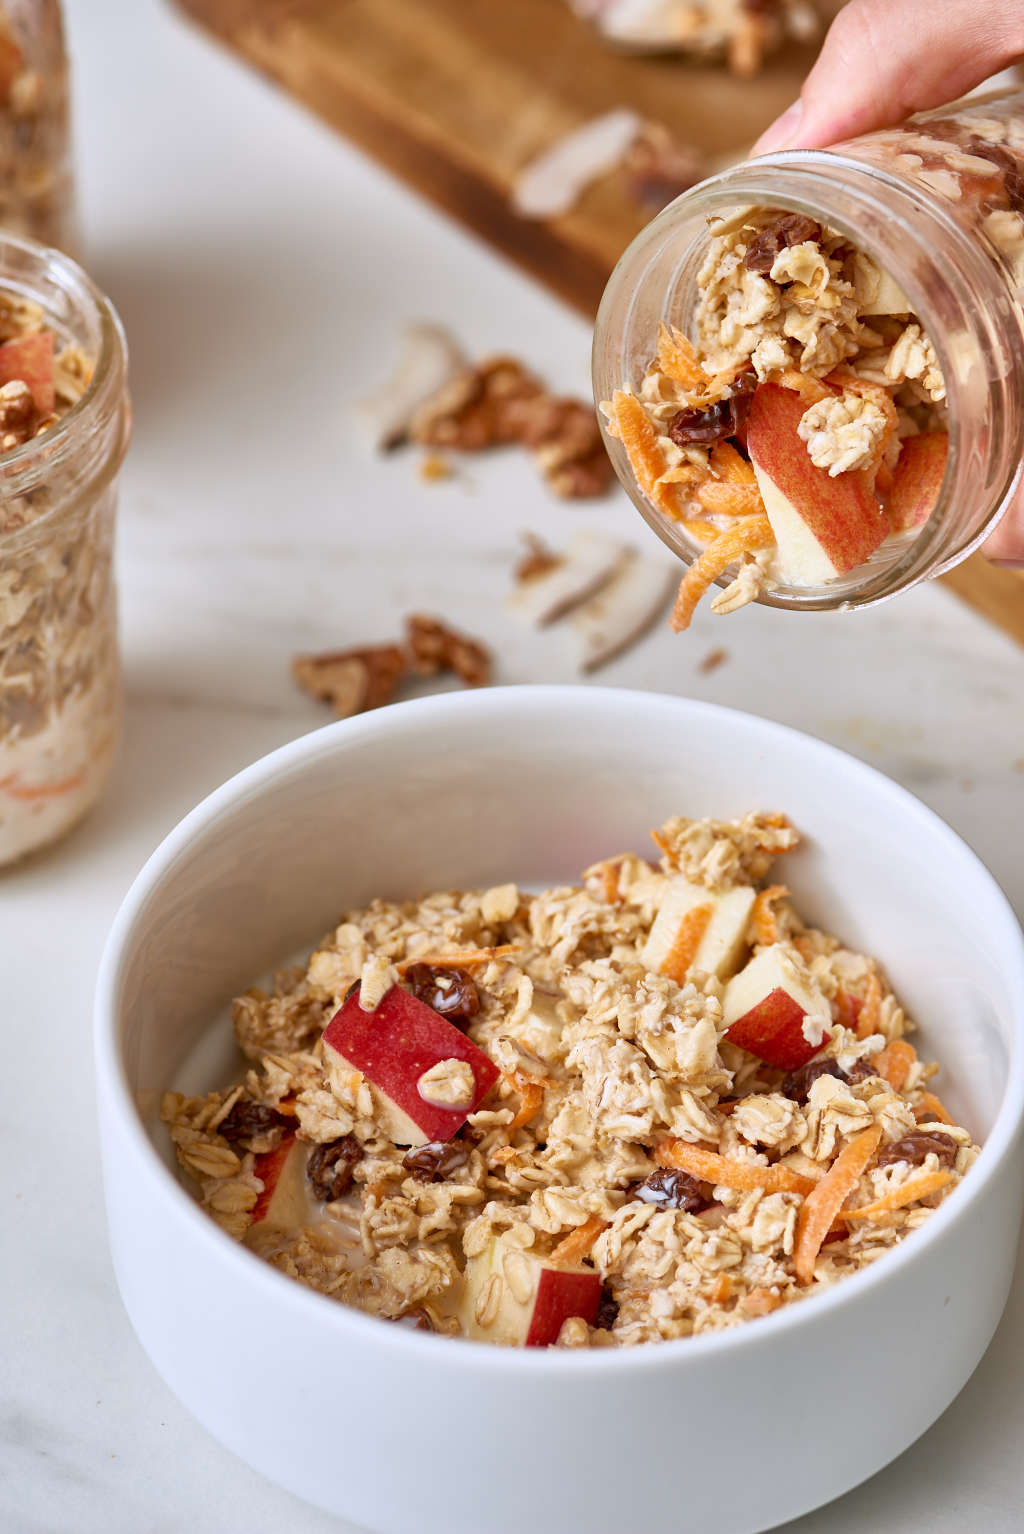 These Overnight Oats Taste Just Like Morning Glory Muffins